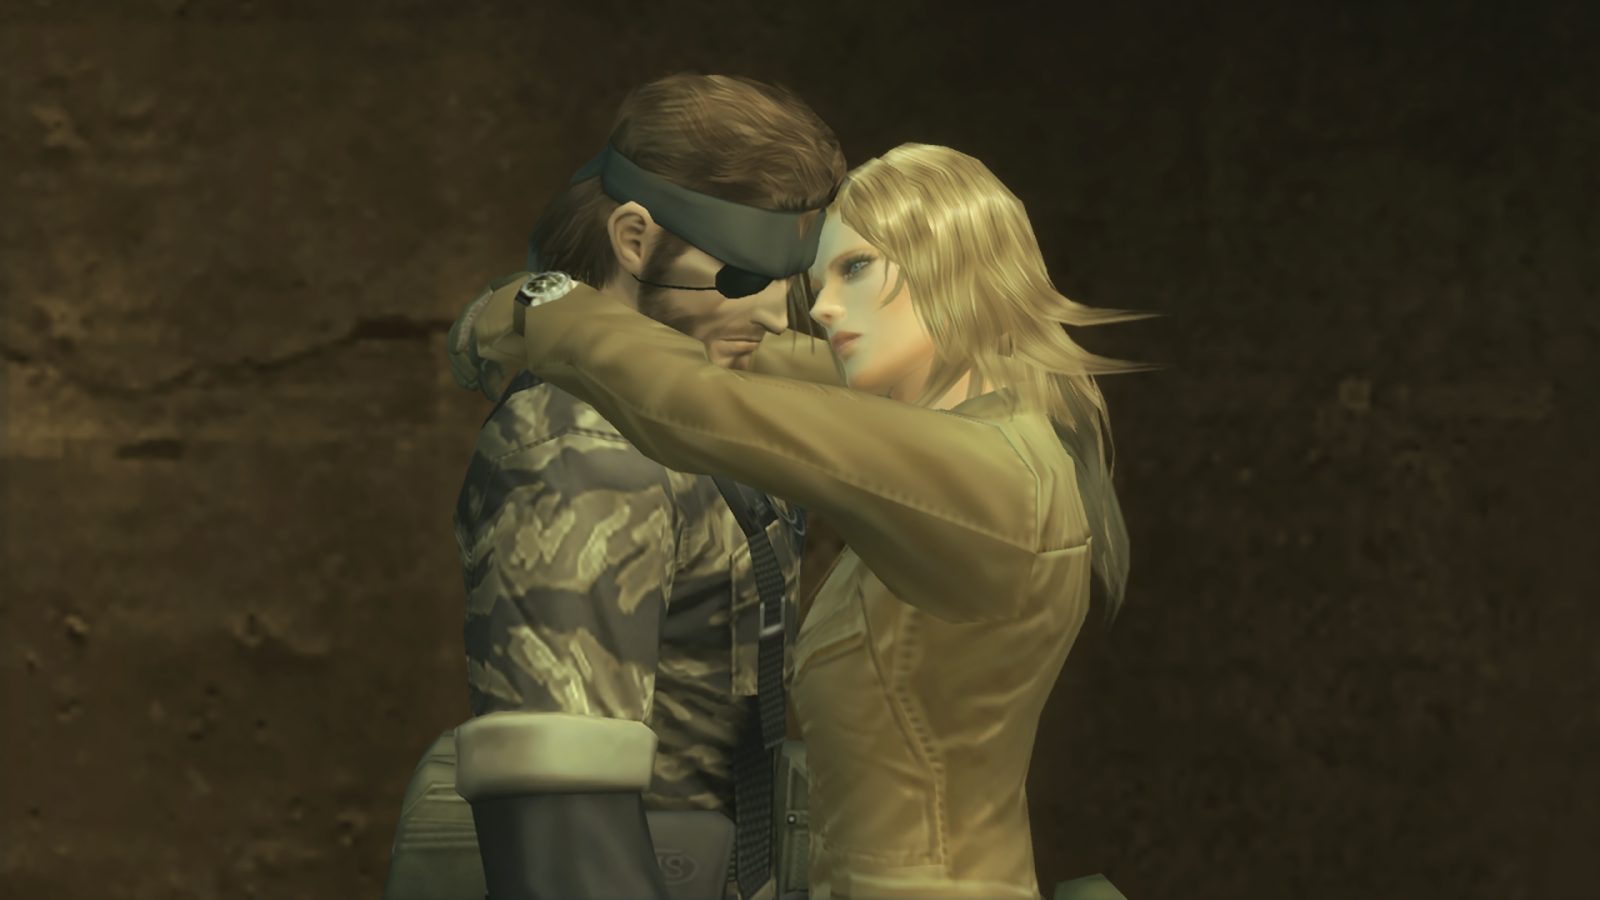 Metal Gear Solid 3: Snake Eater HD for SHIELD TV - Metal Gear Solid 3: Snake Eater